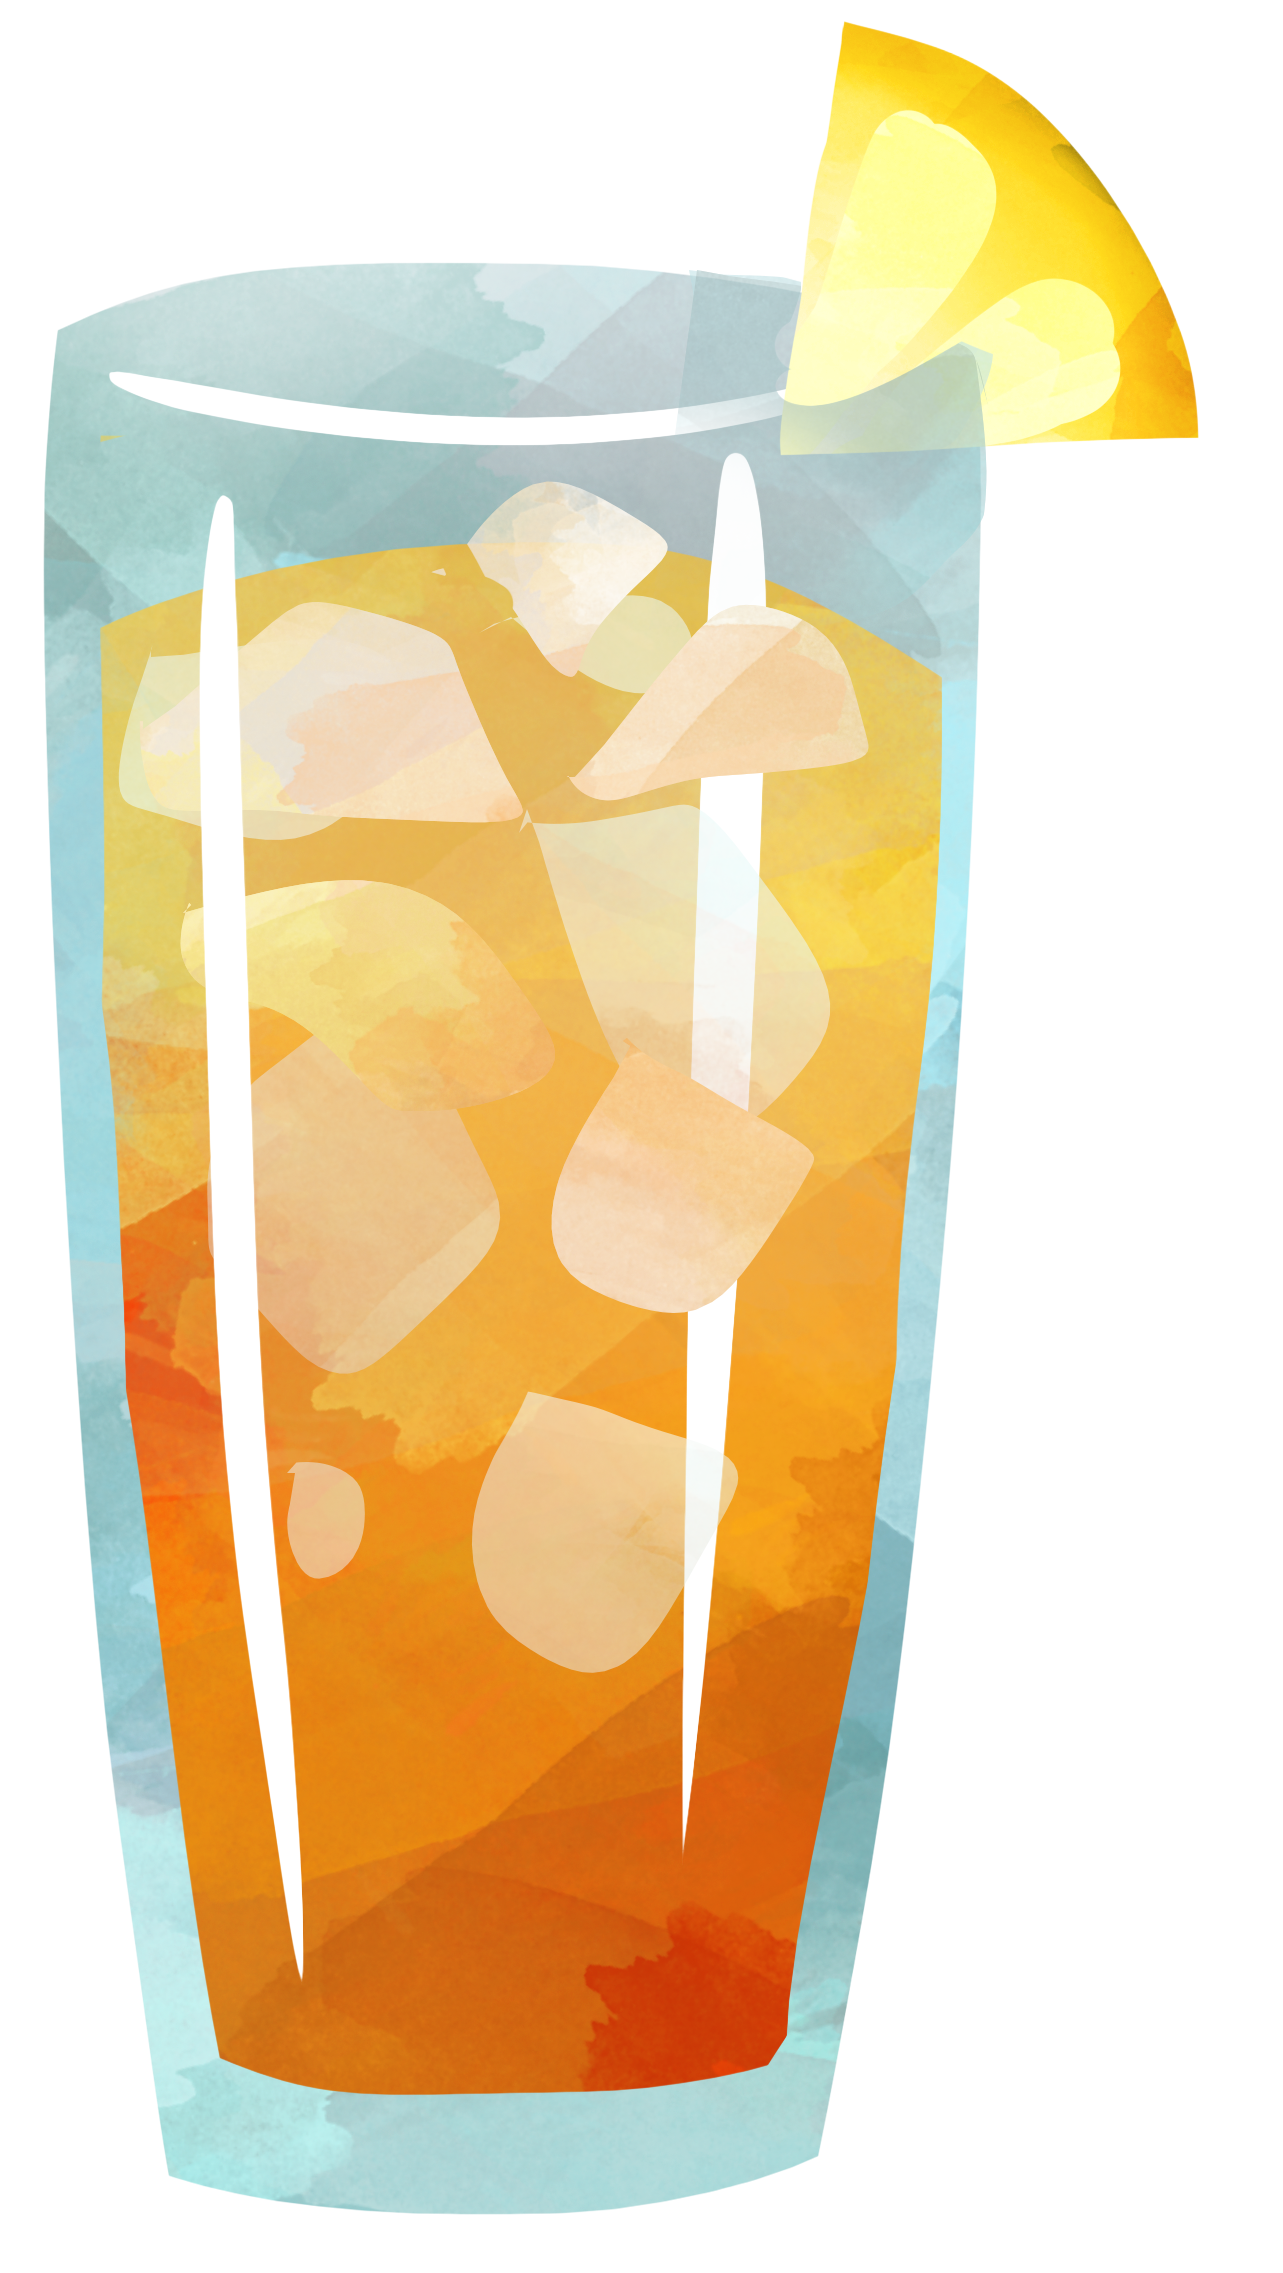 ice cocktail